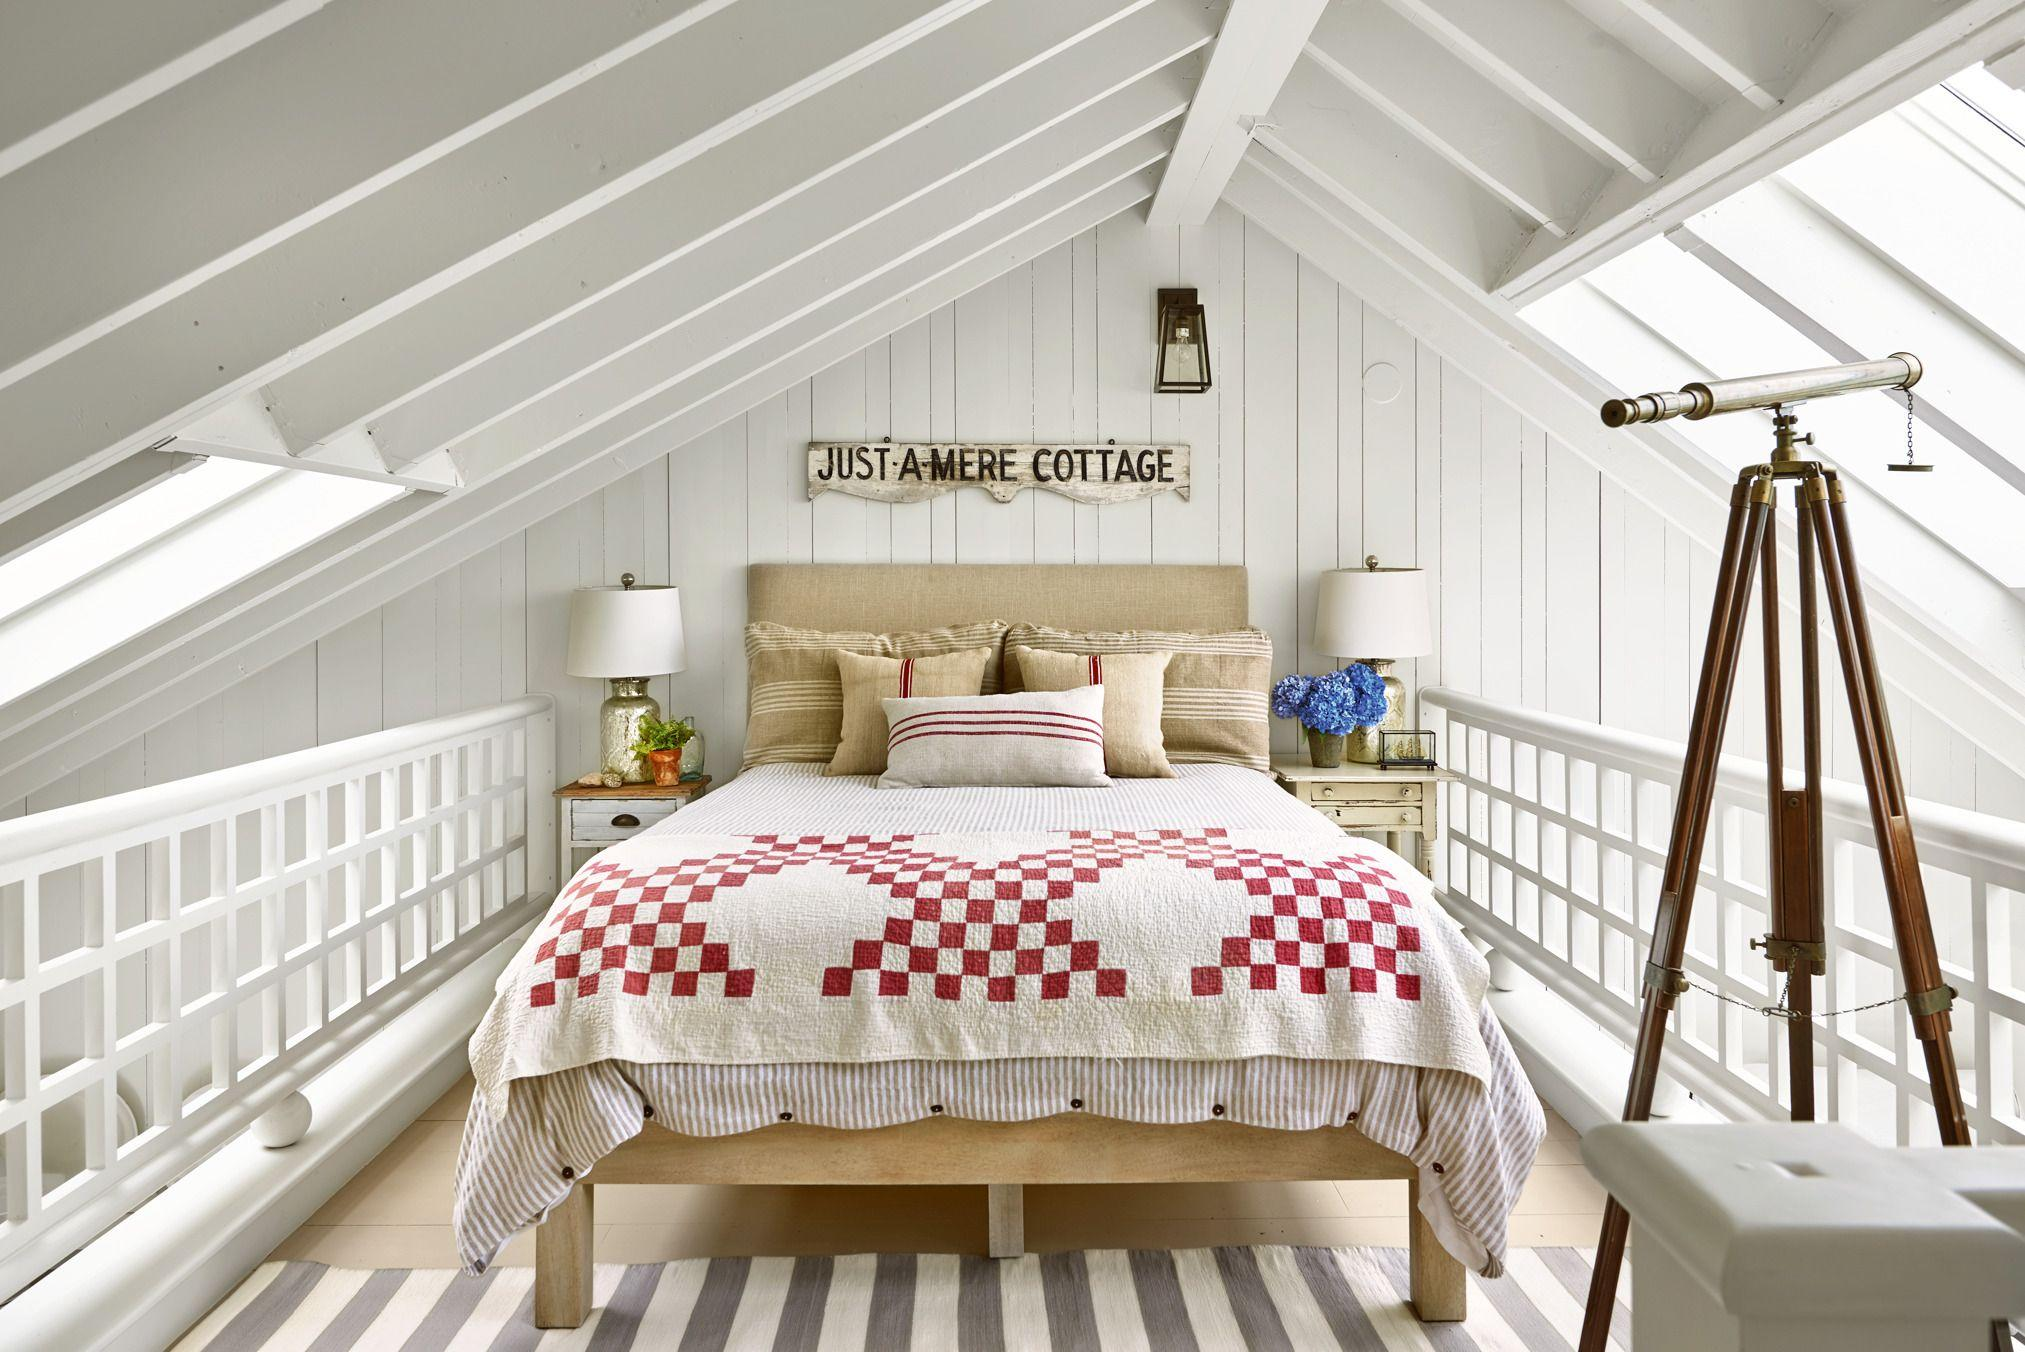 8 Best Bedroom Paint Color Ideas for a Dreamy Space